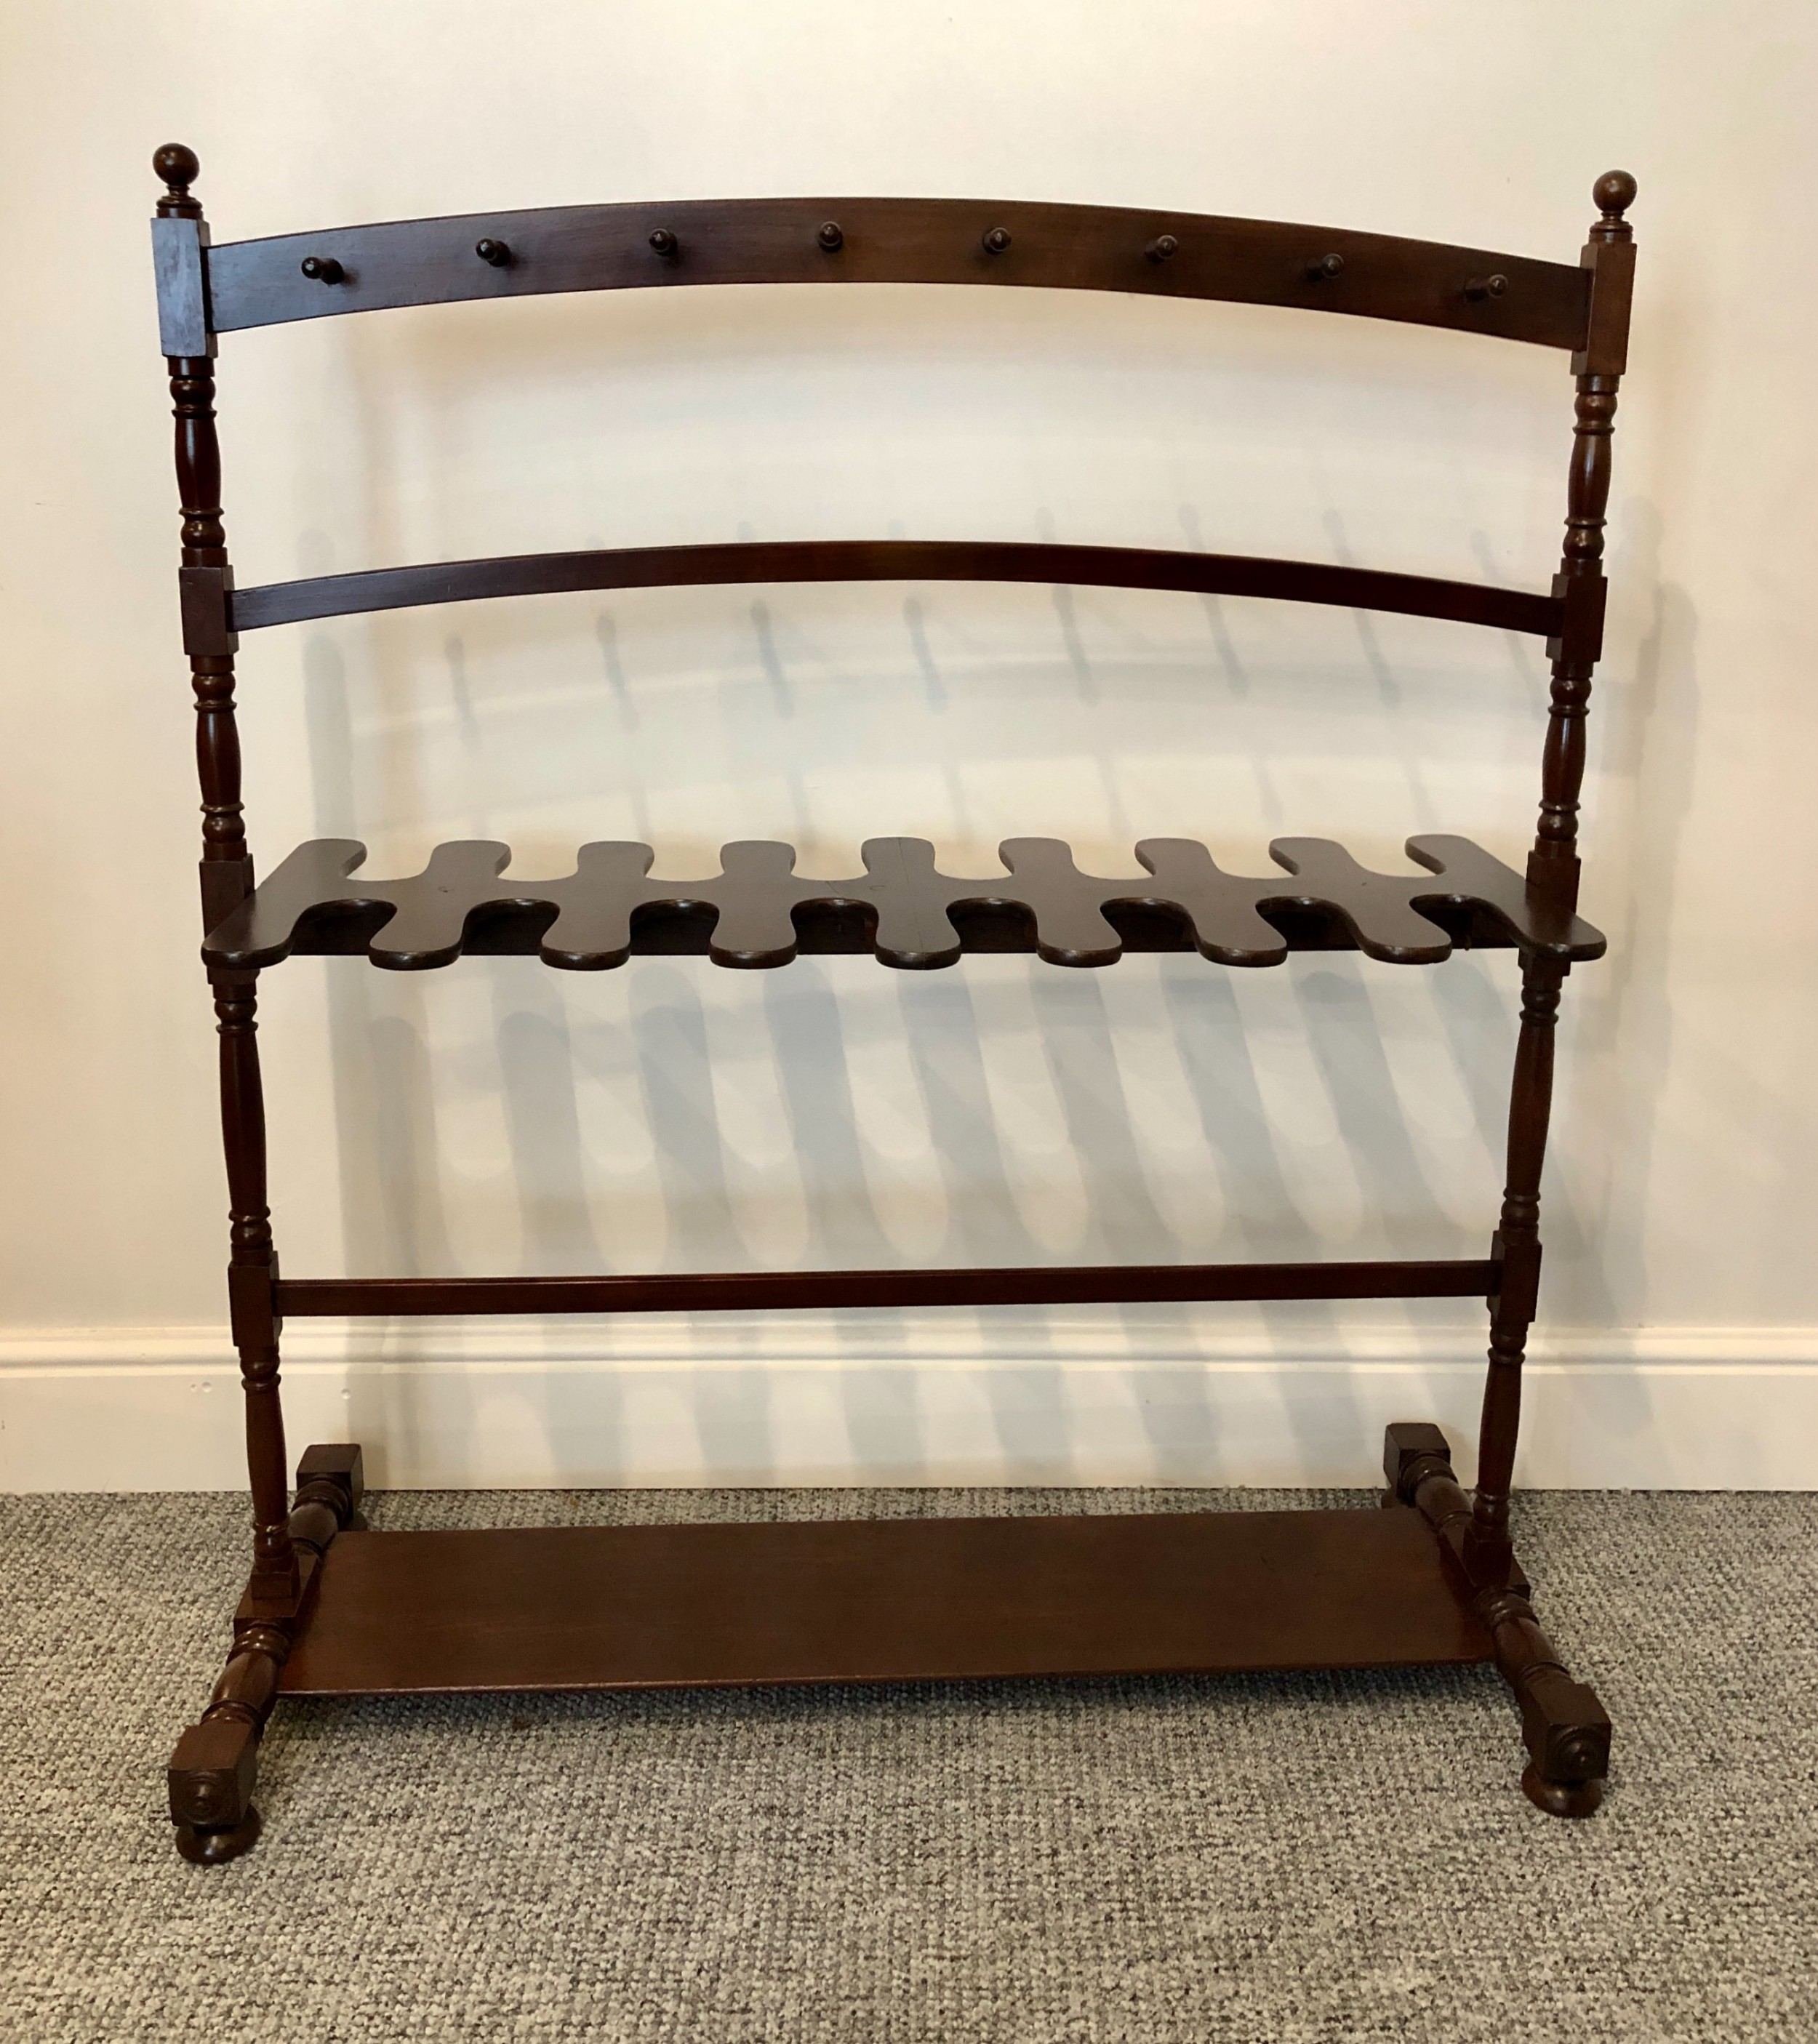 superb large antique regency mahogany whip and boot rack stand